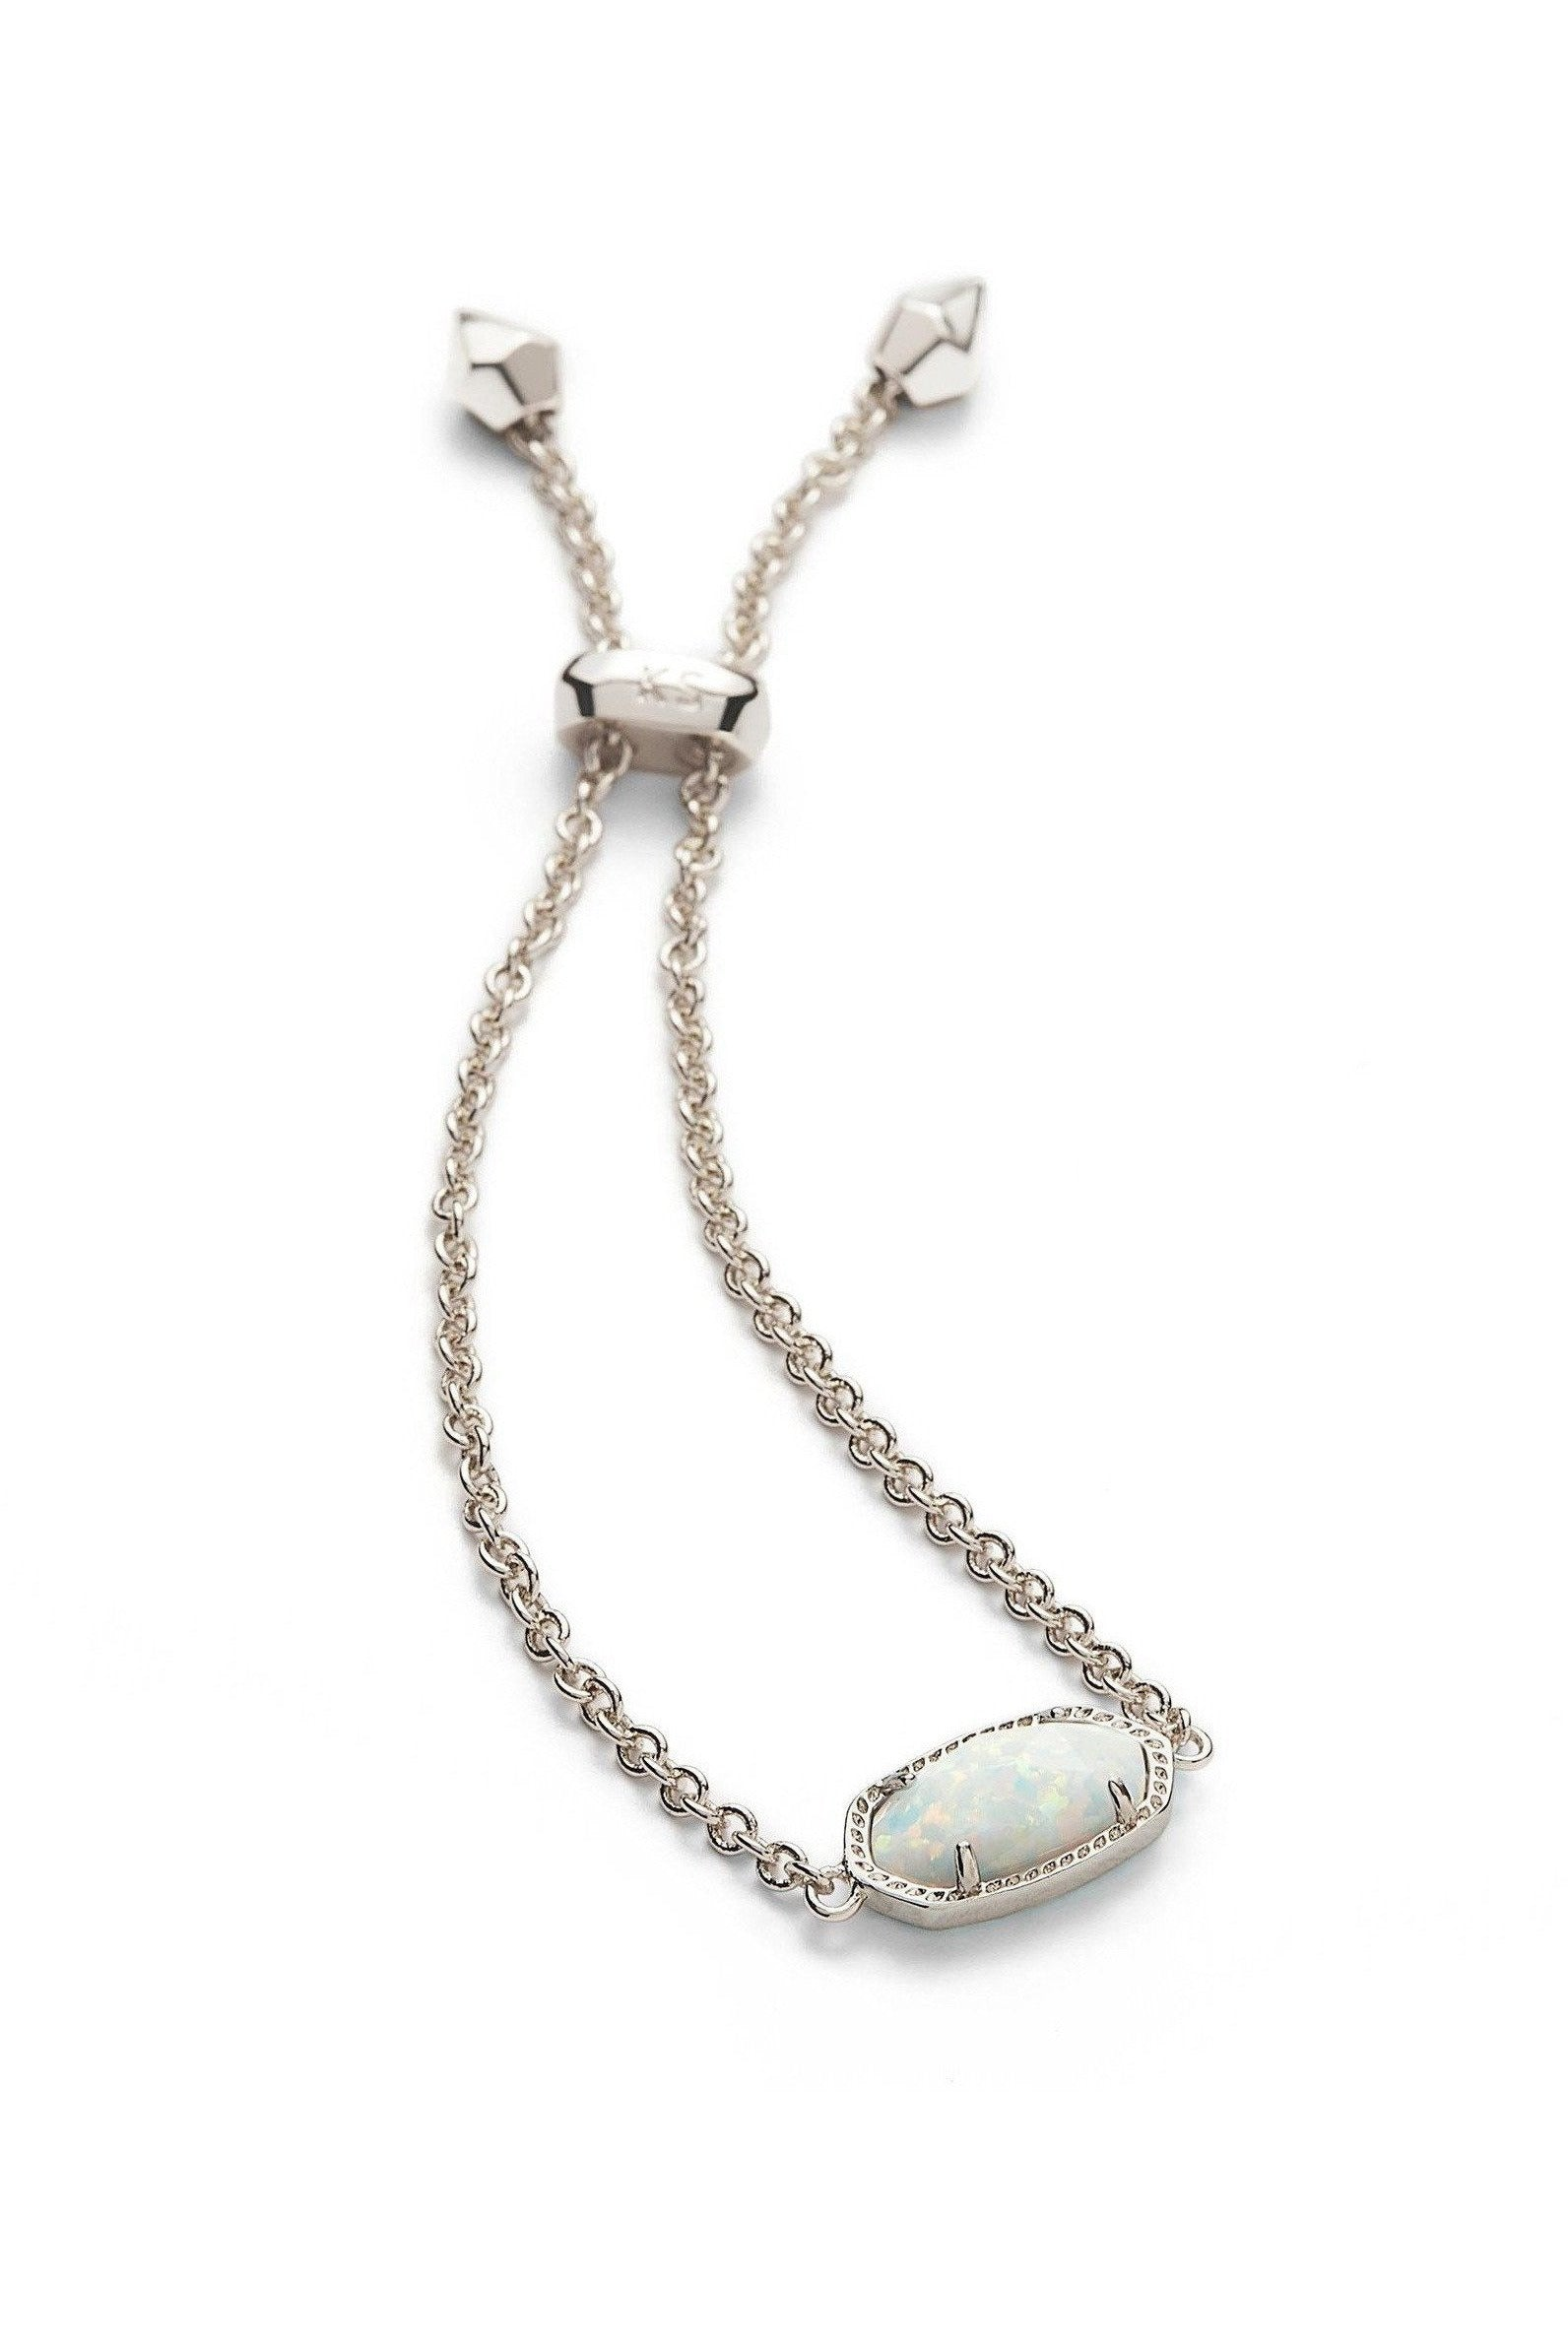 Kendra Scott: Elaina Silver Adjustable Chain Bracelet In White Kyocera Opal